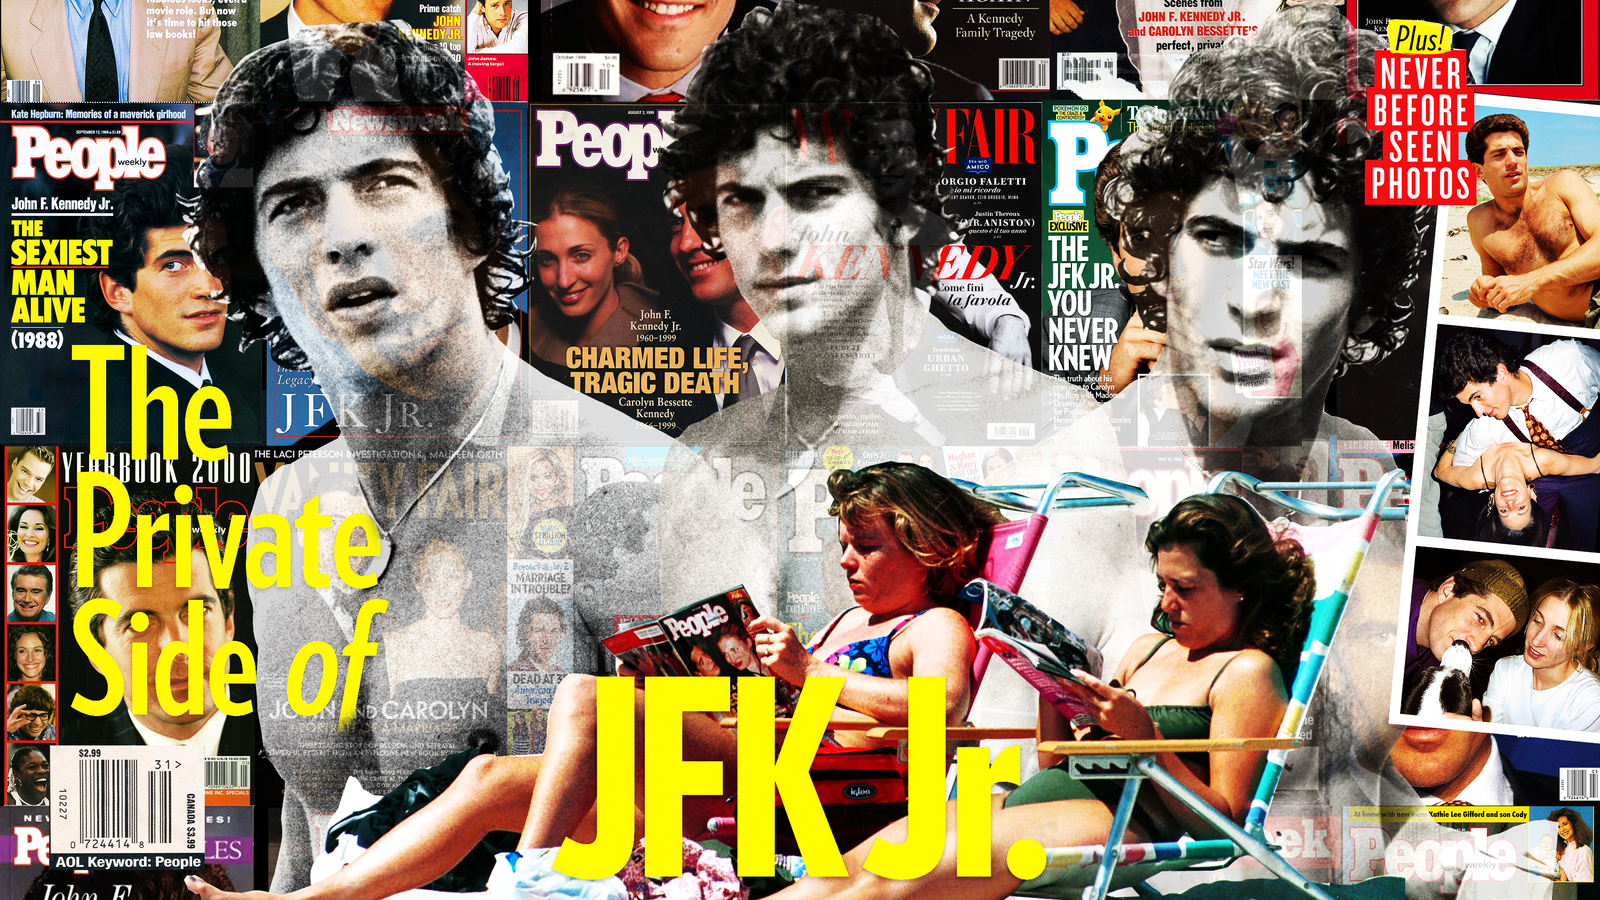 John F Kennedy Jr Special Last Days Of Magazine Bred Fame